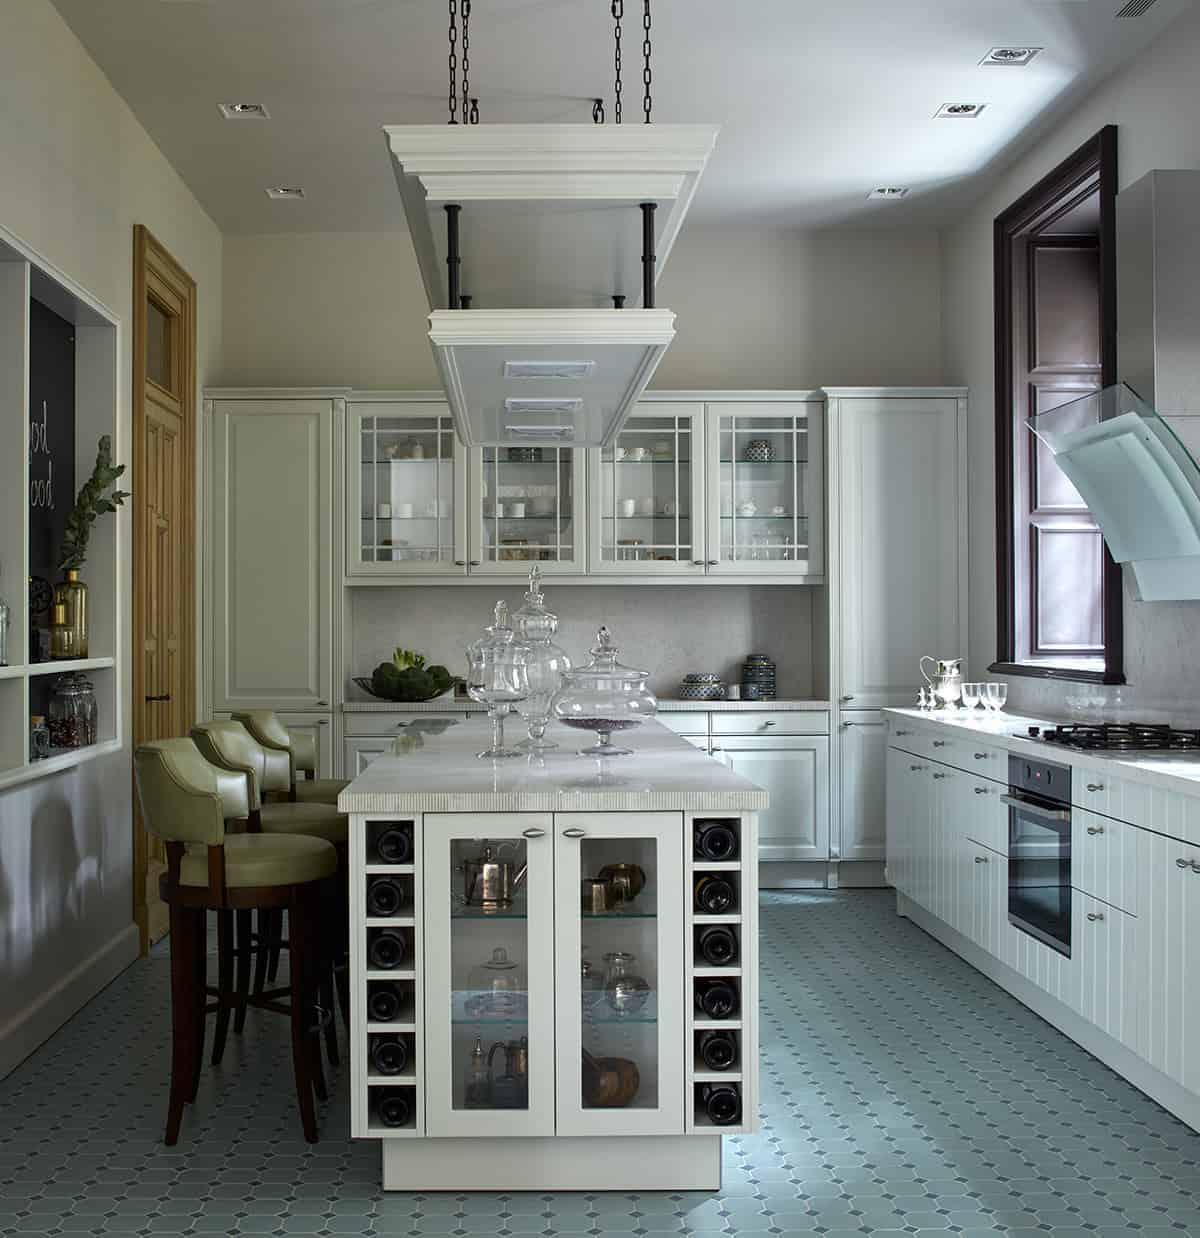 The pastel green patterned tiles of the floor provide a nice background for the white cabinetry of the kitchen island and peninsulas that has white shaker cabinets and drawers.